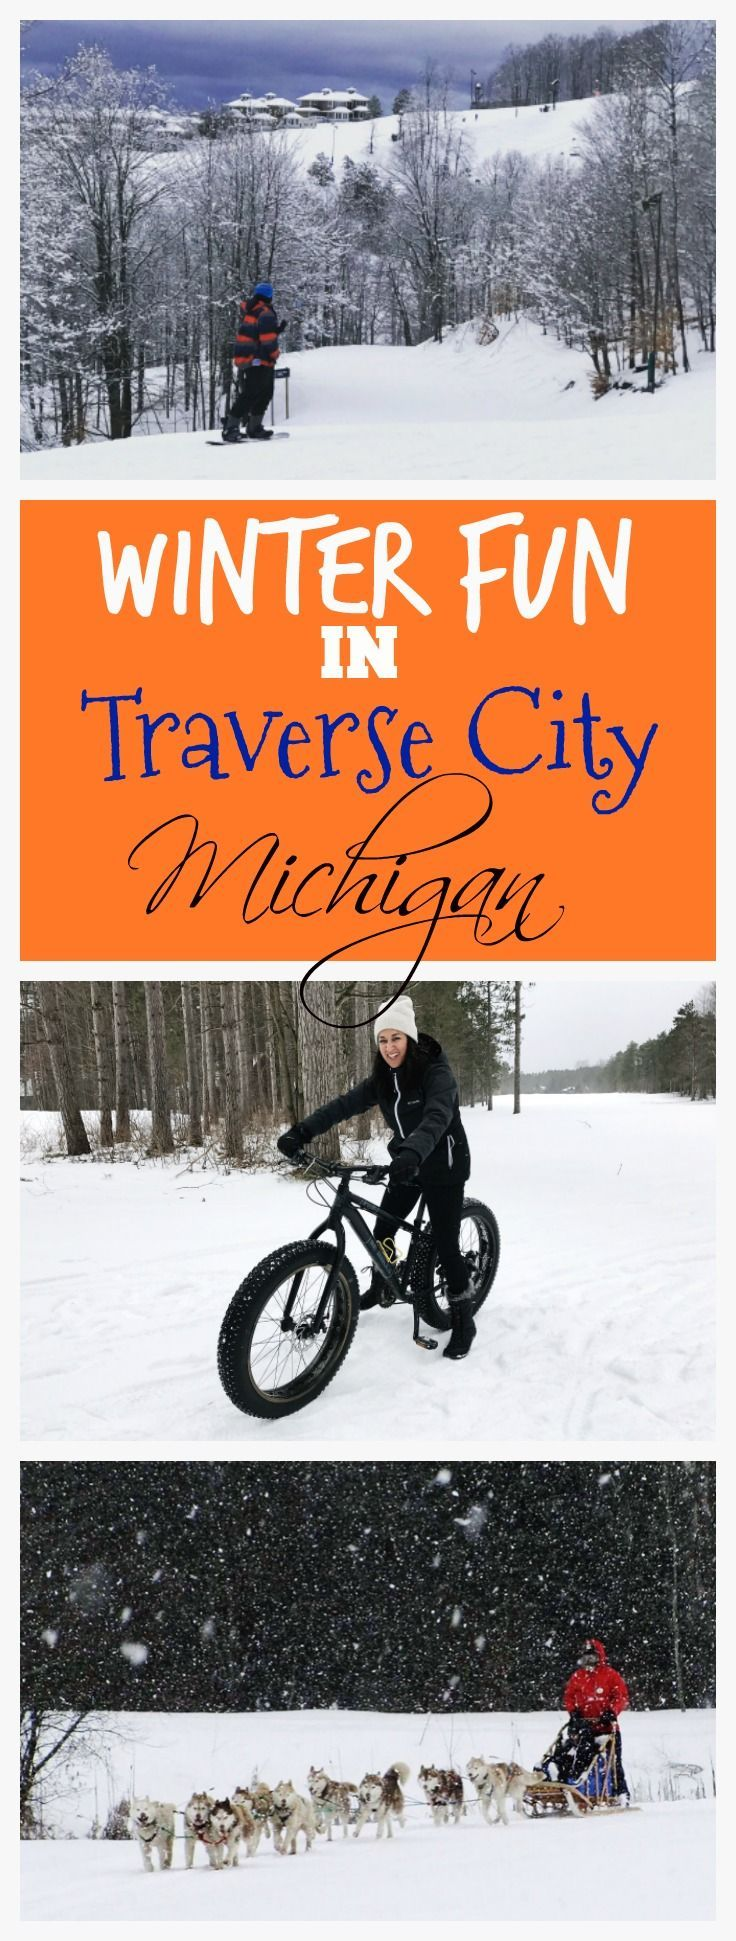 Here's the scoop on Traverse City, Michigan! Your guide to winter fun, skiing, activities, resorts, restaurants, breweries, and more!